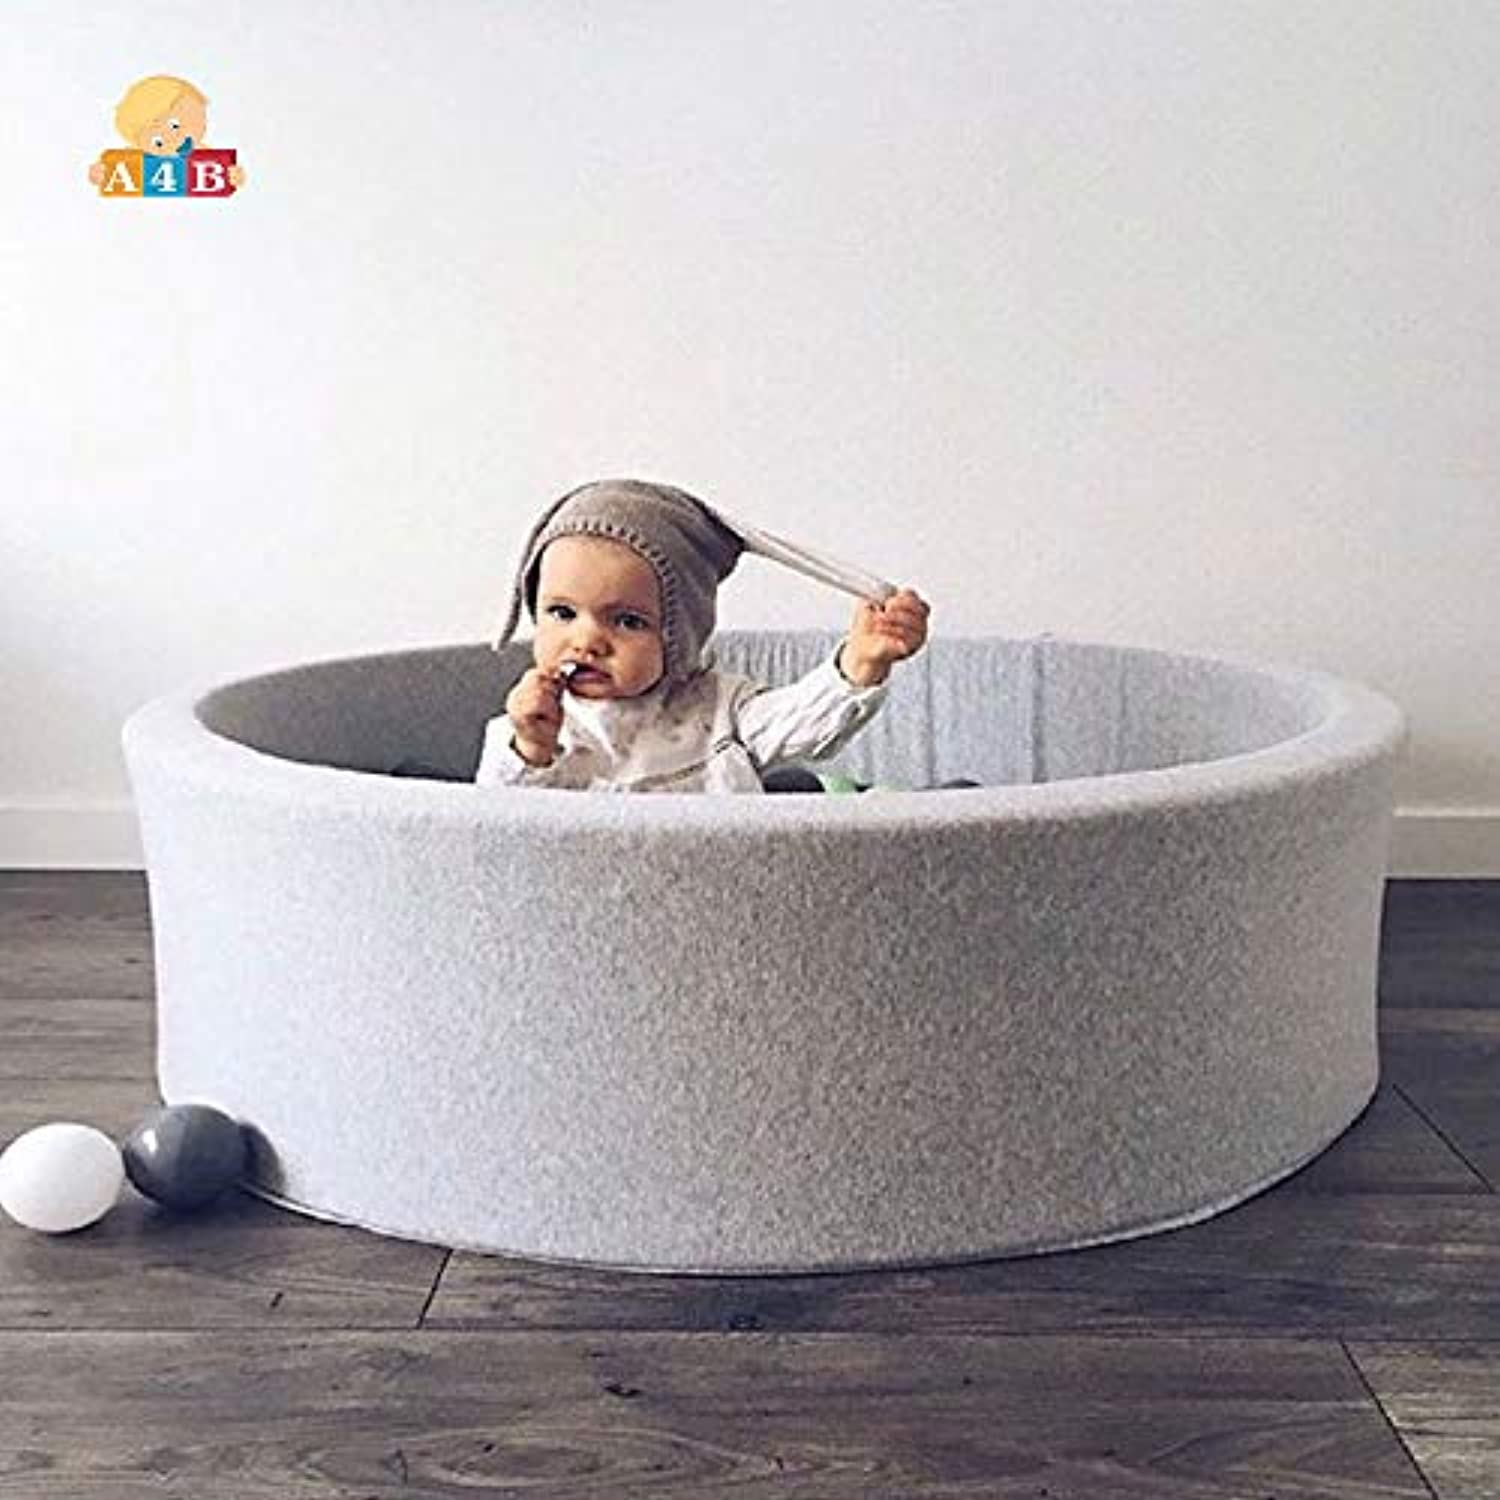 Grey Round Play Ball Pool Fencing Manege For Newborns/Baby Playpen For Children